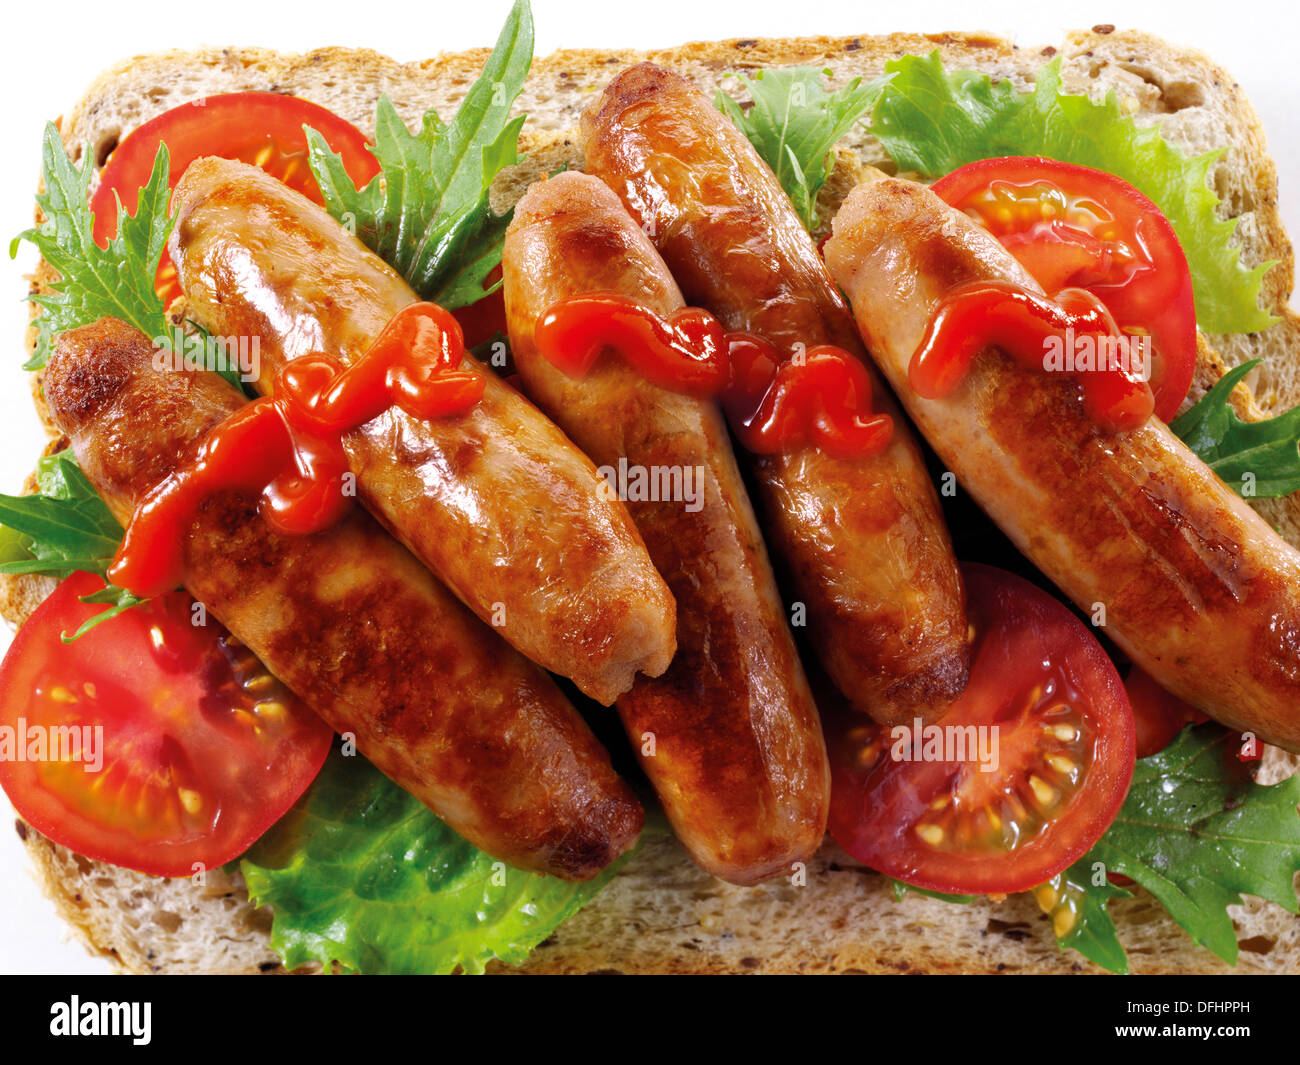 British Food - Sausage Sandwich - Stock Image